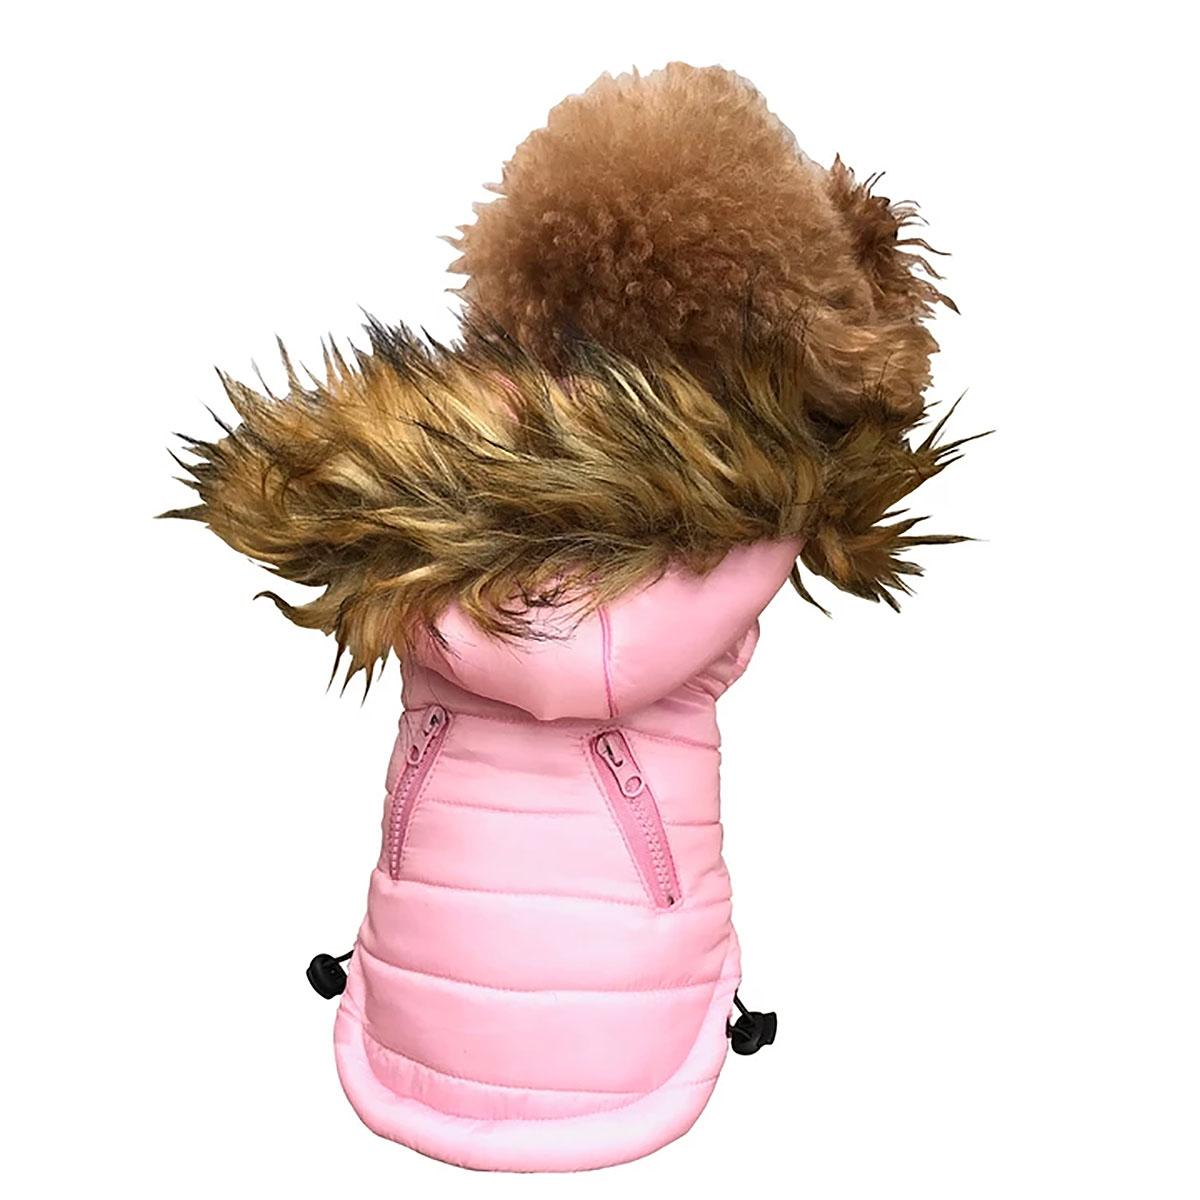 Ski Bunny Puffer Dog Coat with Detachable Hood - Pretty Pink